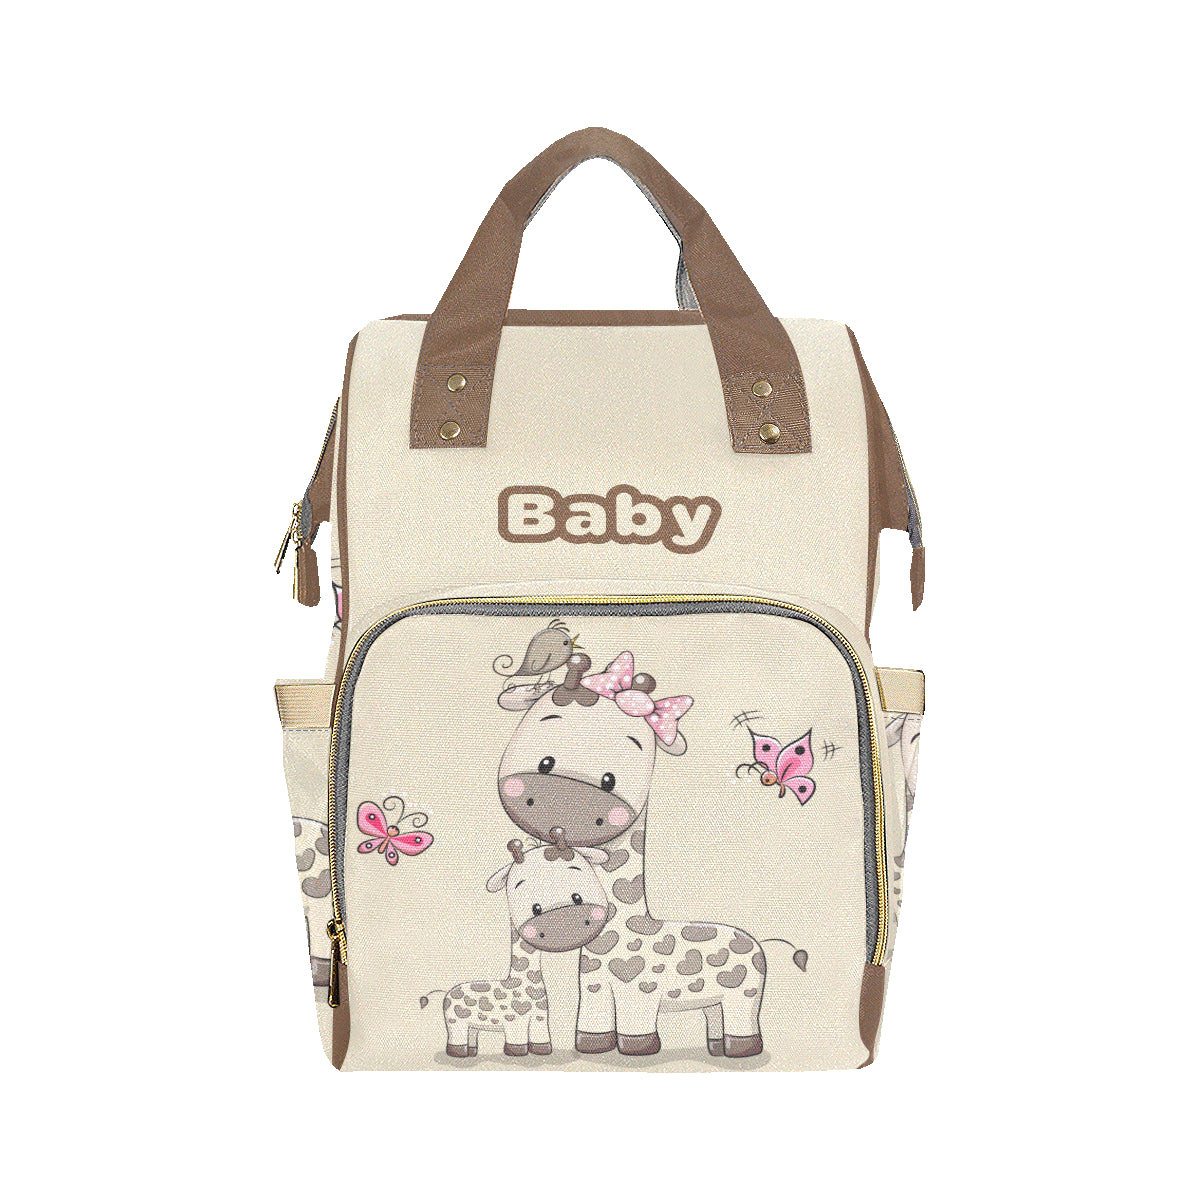 Mommy & Baby Giraffe Tan Baby Bag Multi-Function Premium Backpack